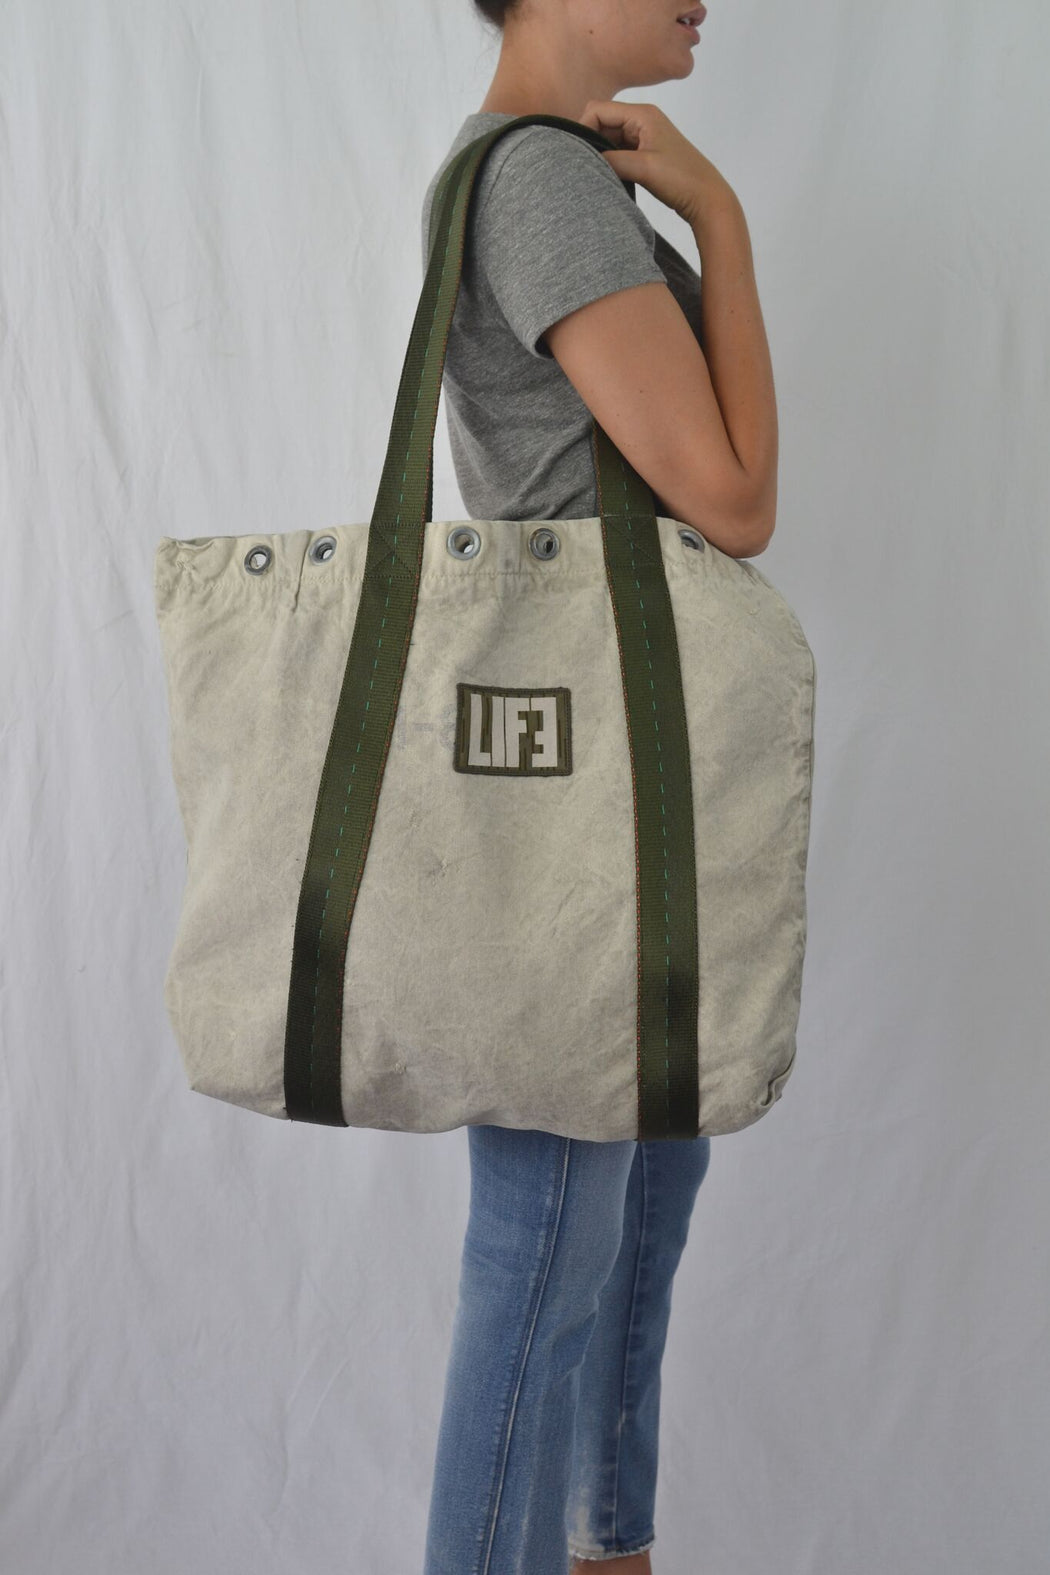 Up-Cycled and Recycled Canvas US Mail Tote Bag